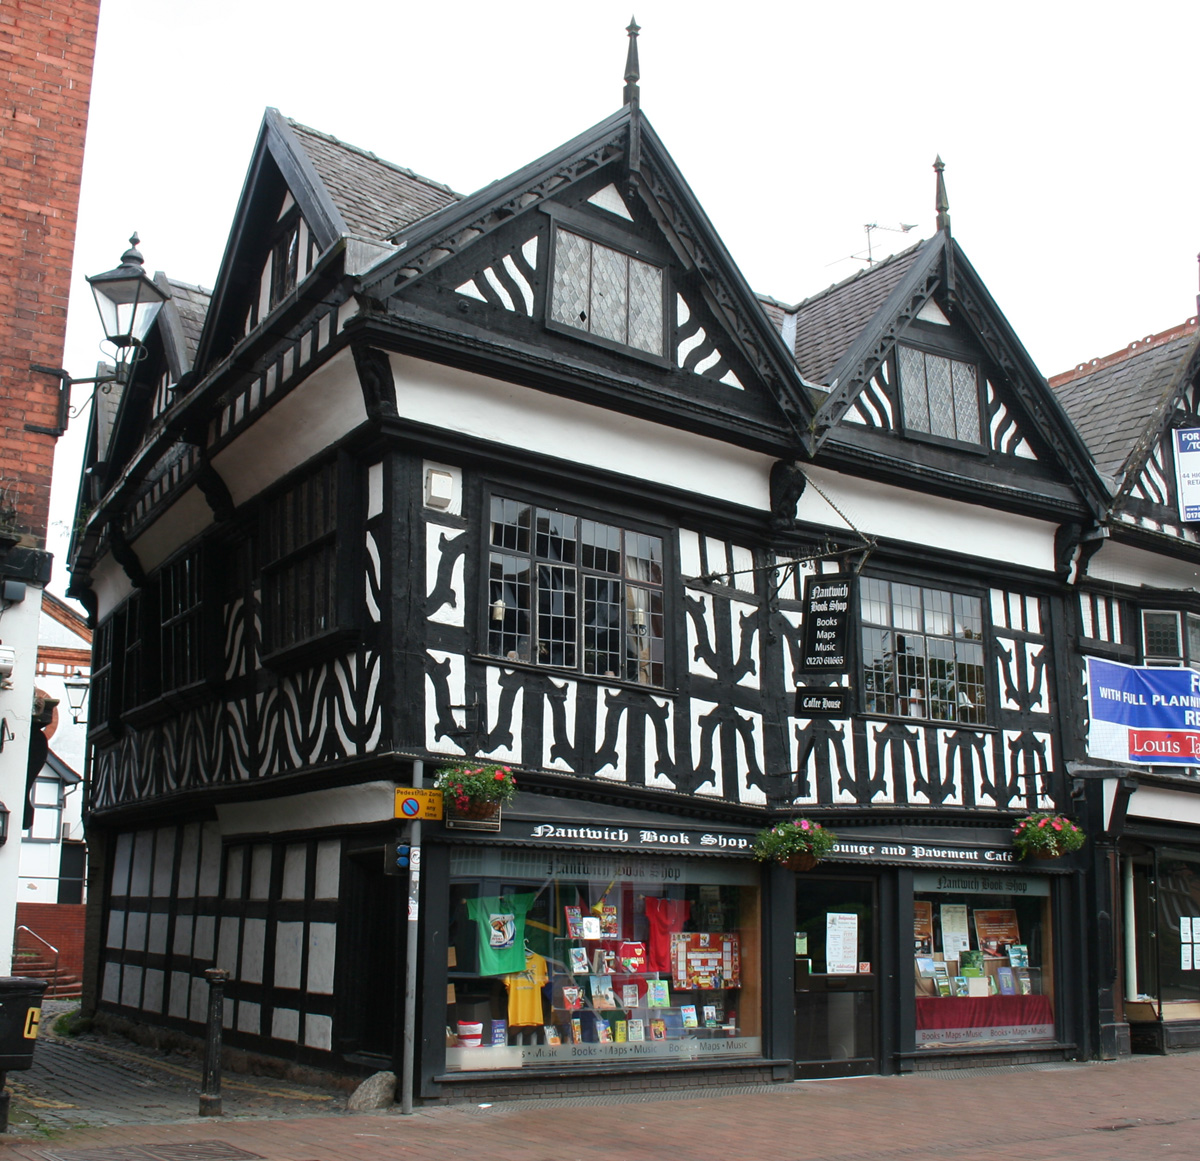 46 high street nantwich   wikipedia